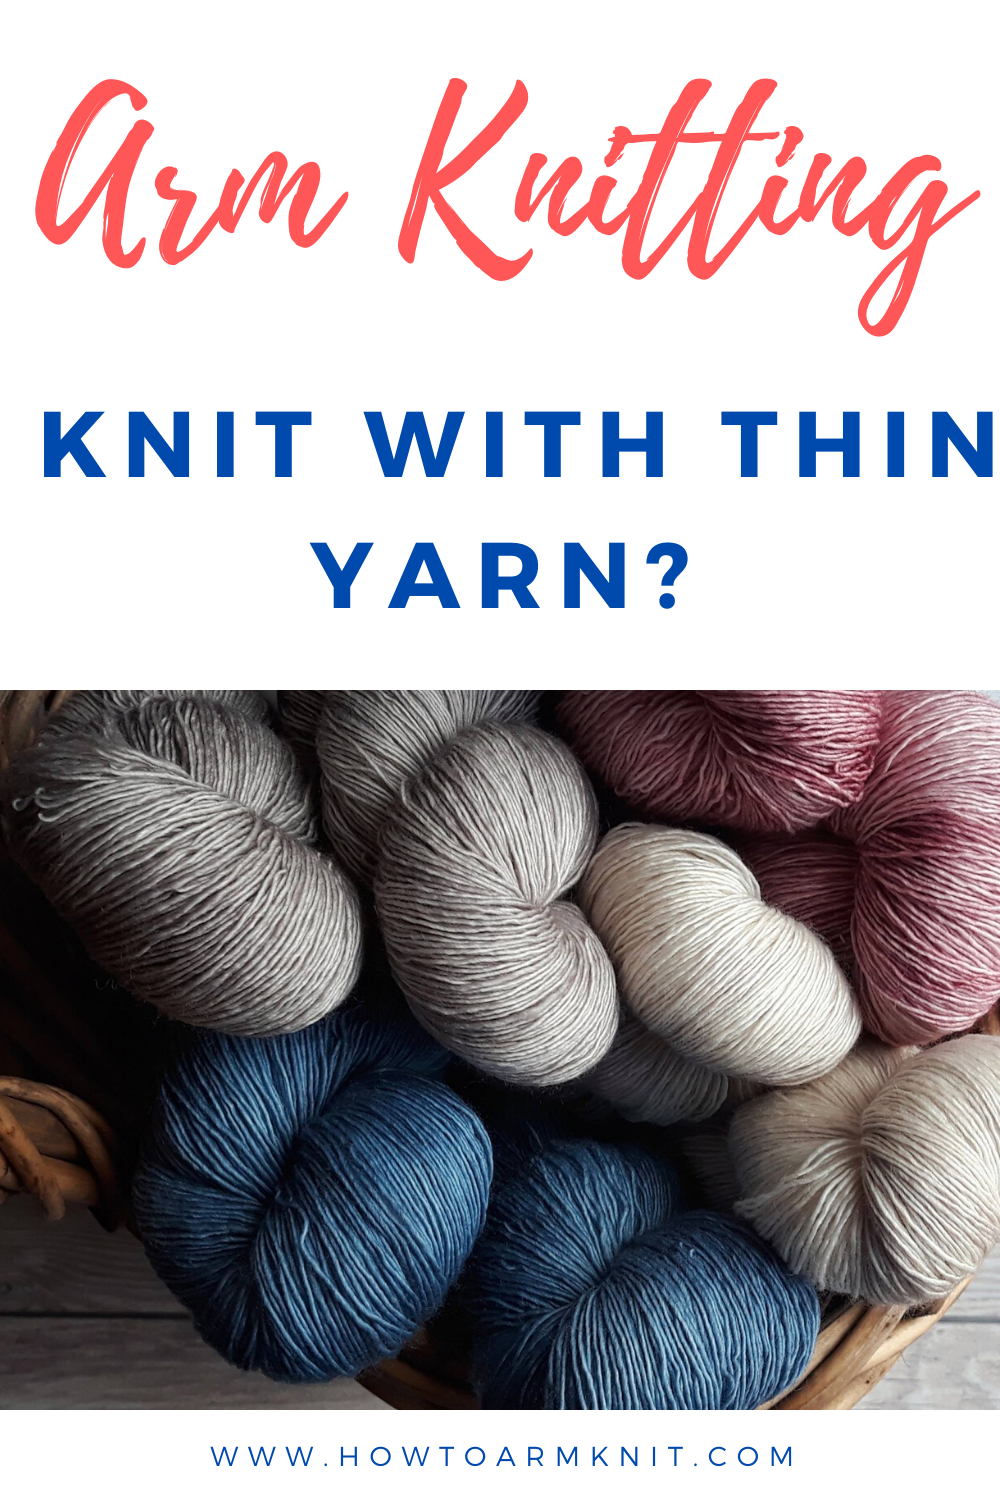 Can You Arm Knit A Blanket With Thin Yarn Arm Knitting Knitting